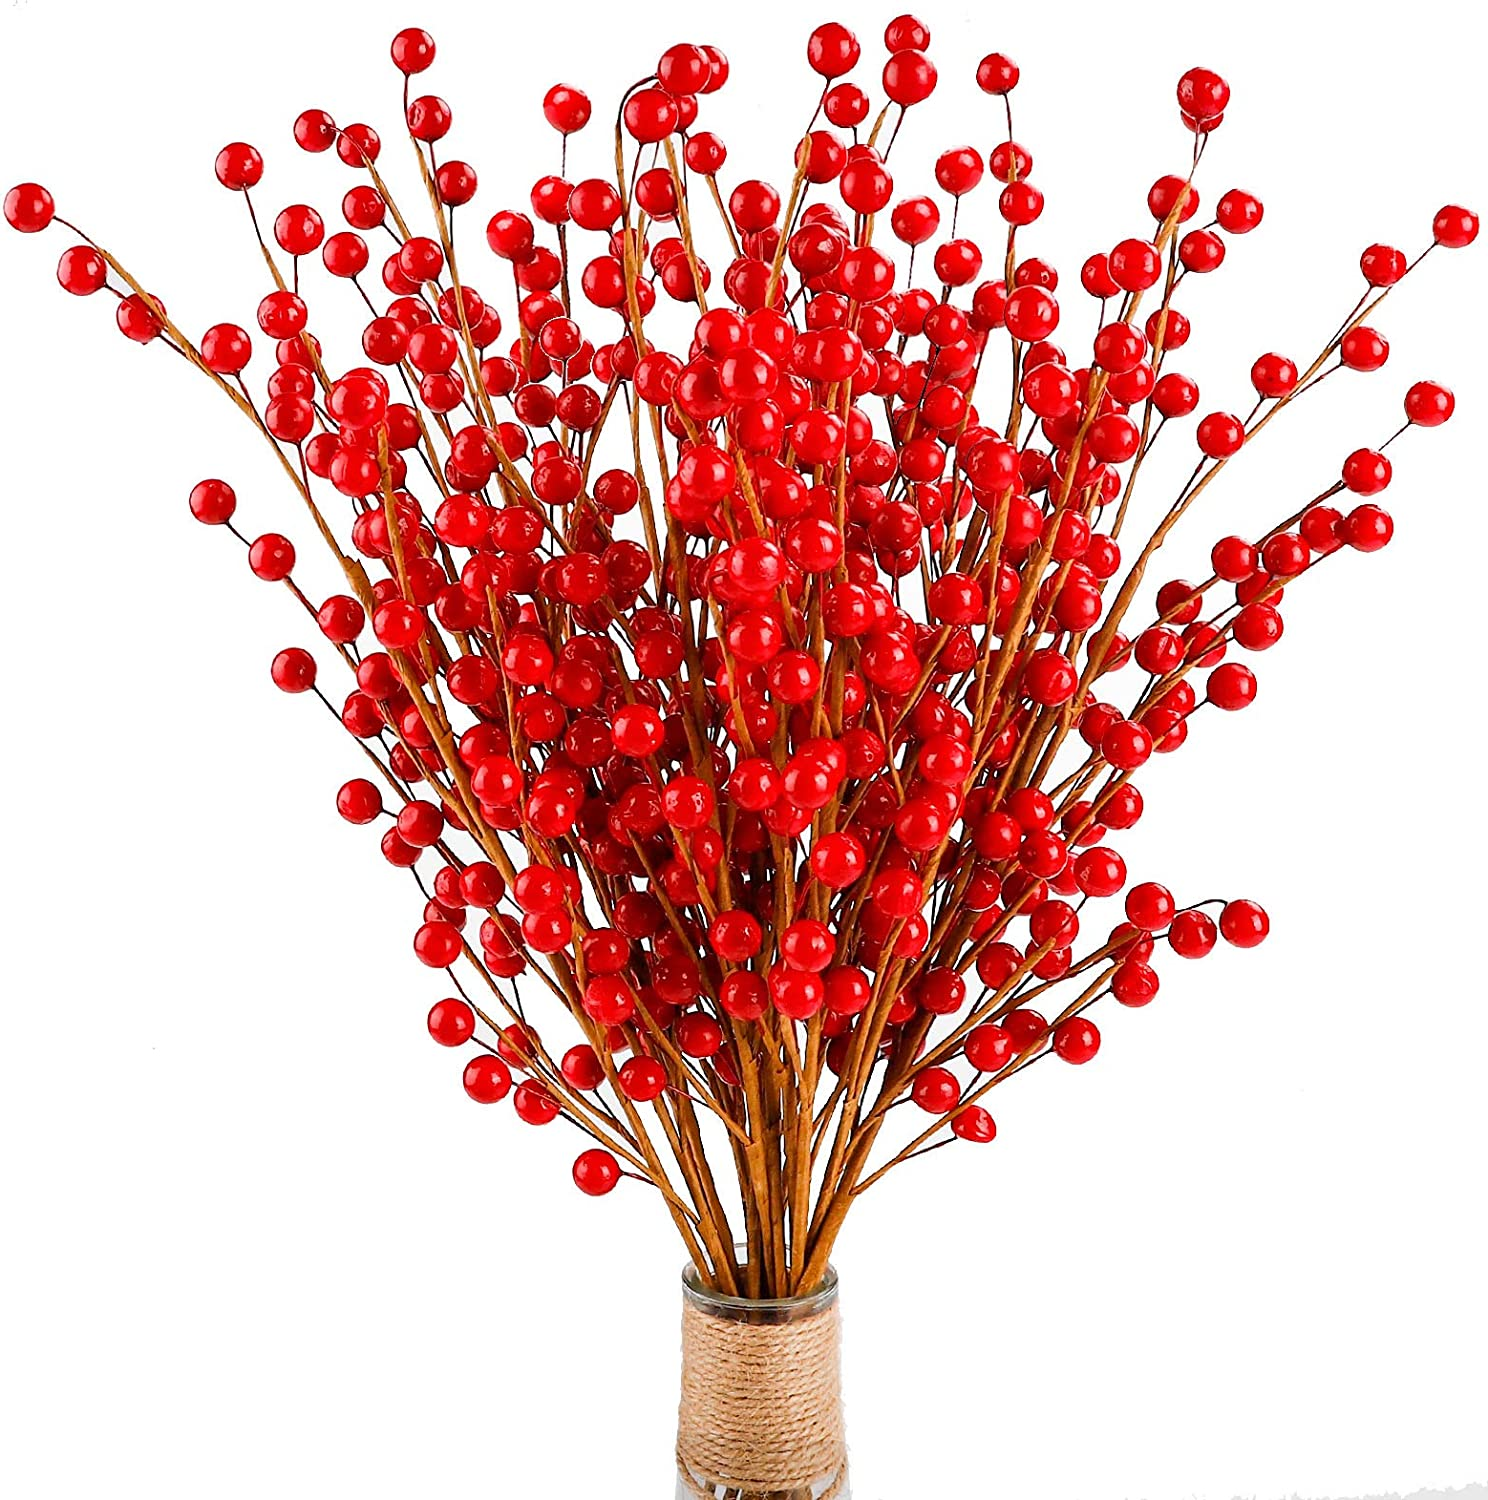 FUNARTY 15pcs Artificial Red Berries Christmas Berries Stems for Winter Home Decor Craft and Holiday Party